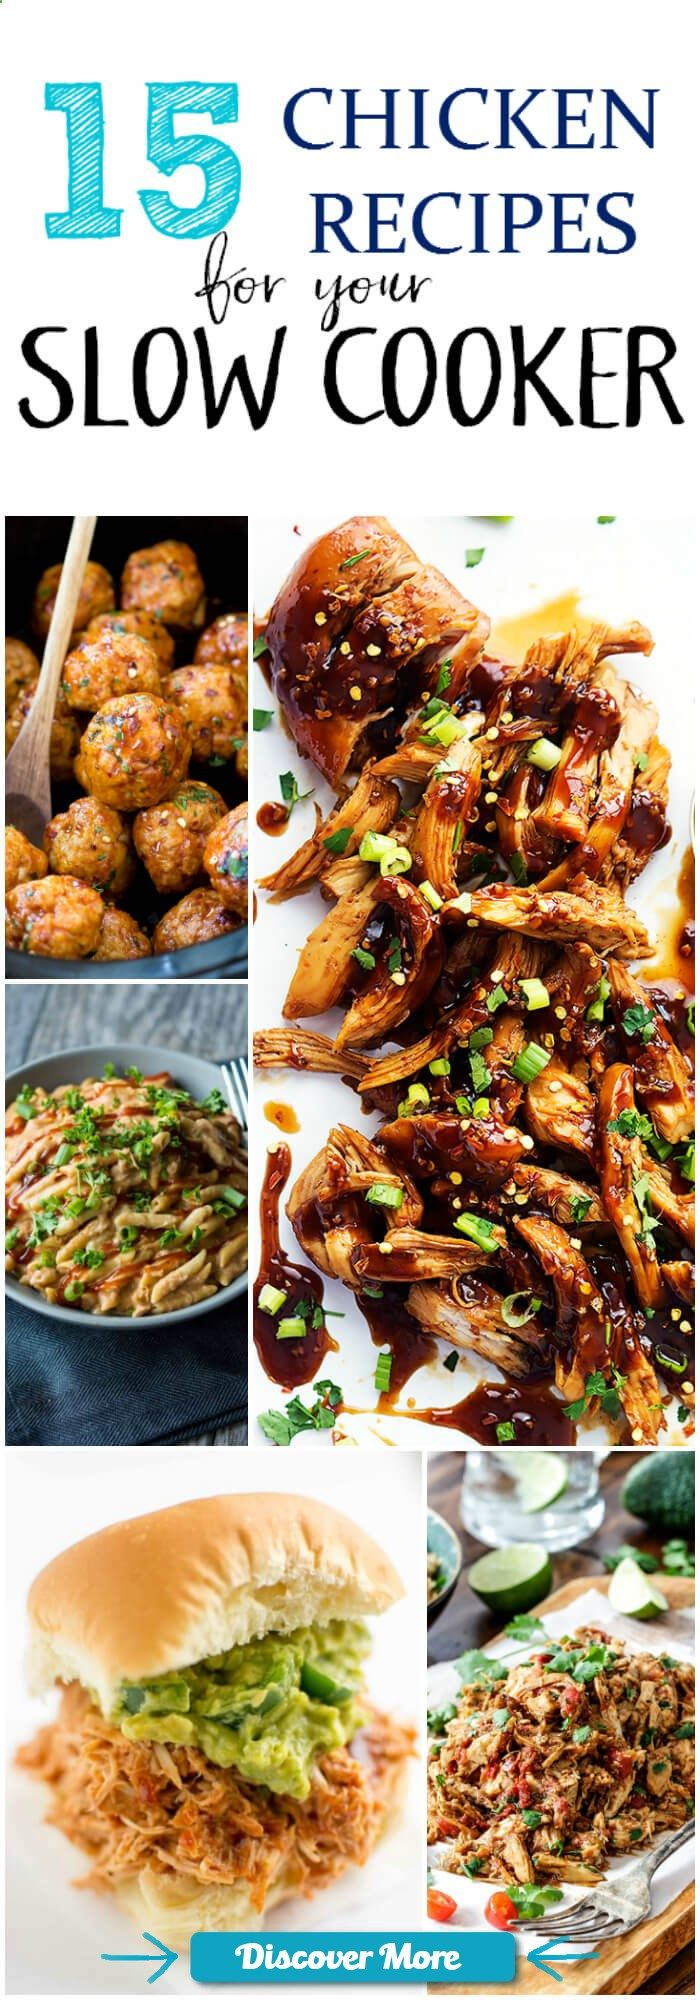 15 Chicken Recipes for your Slow Cooker #slowcooker #slowcook #slowcookerrecipes #slowcookerchicken